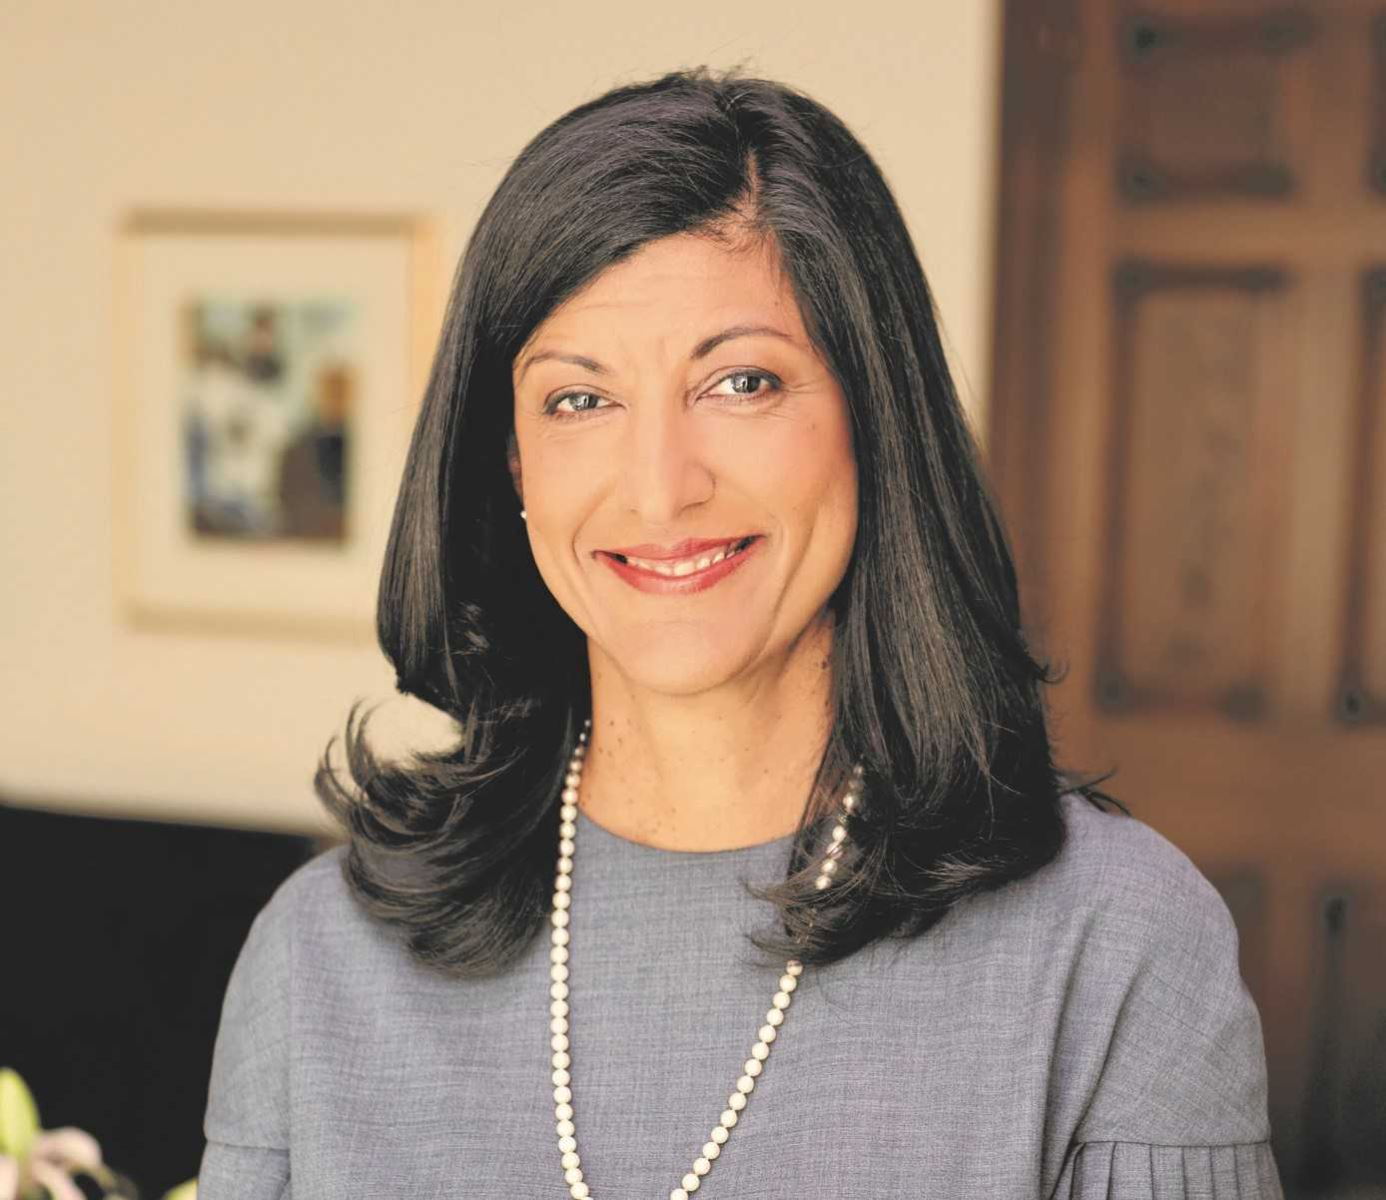 Zabeen Hirji, Former CHRO, Royal Bank of Canada